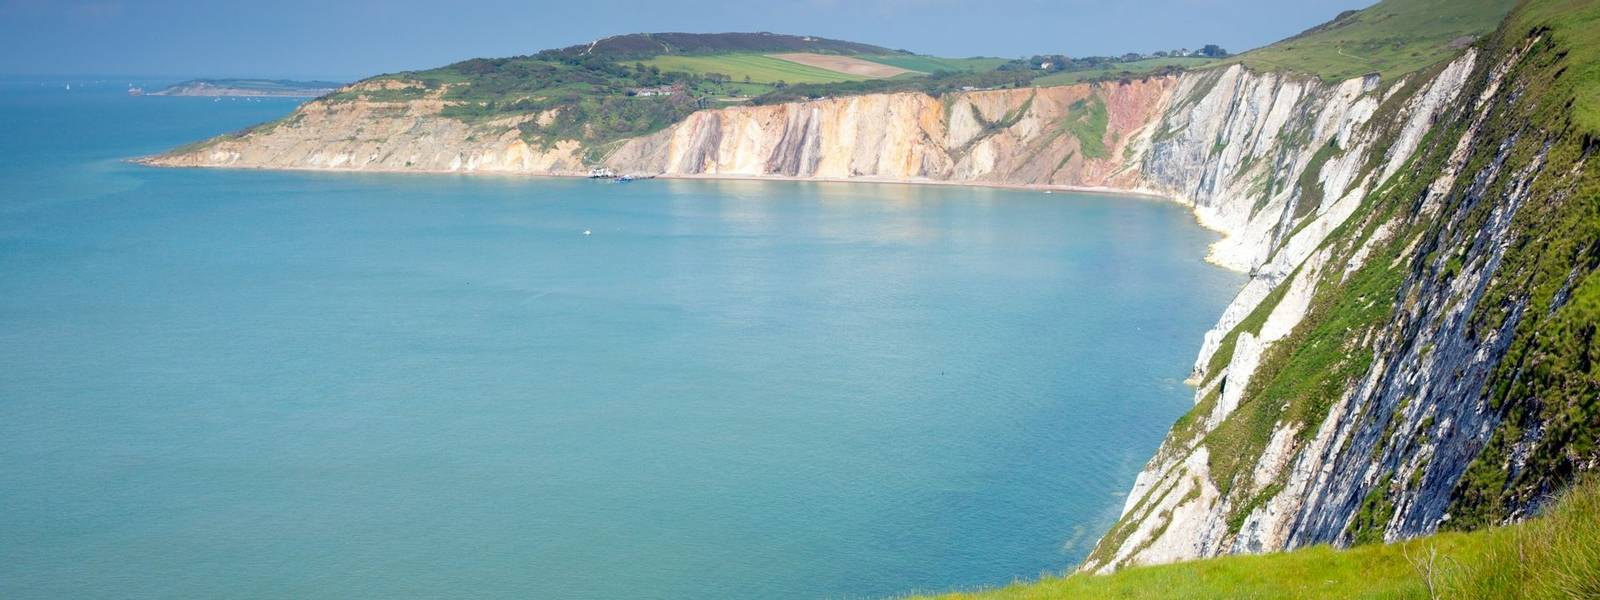 Freshwater Bay - AdobeStock_65988583.jpeg